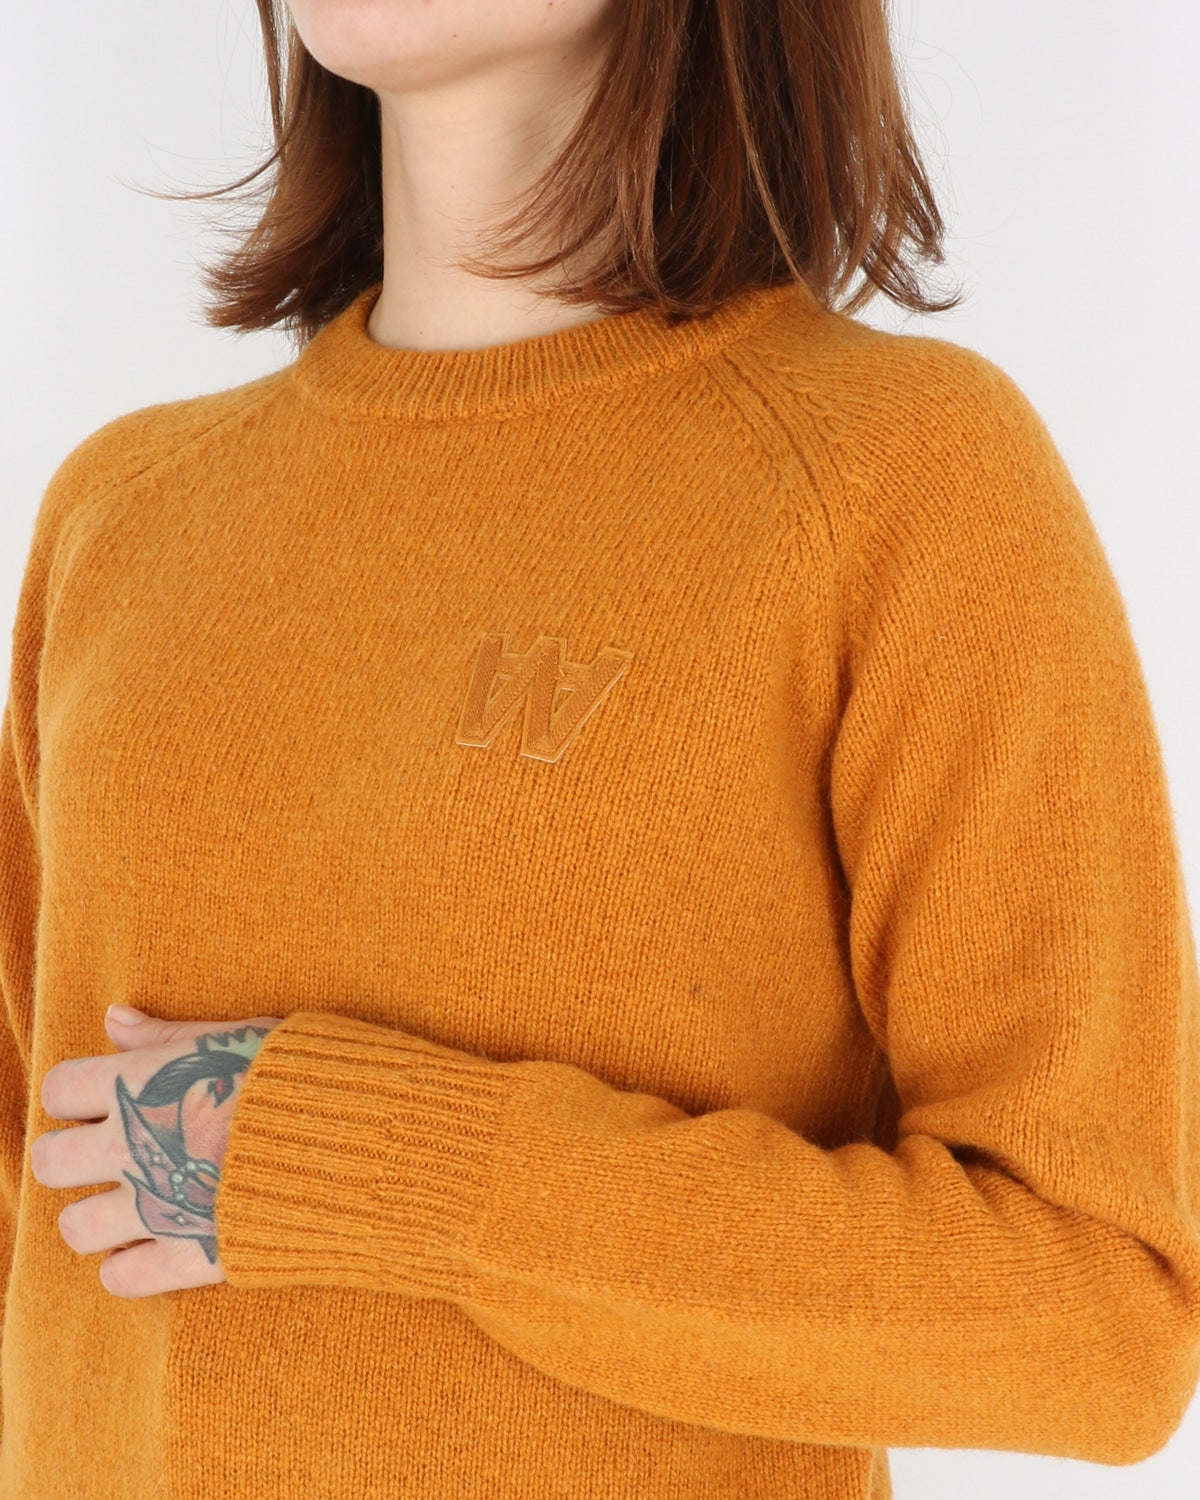 wood wood_asta sweater_mustard_3_4